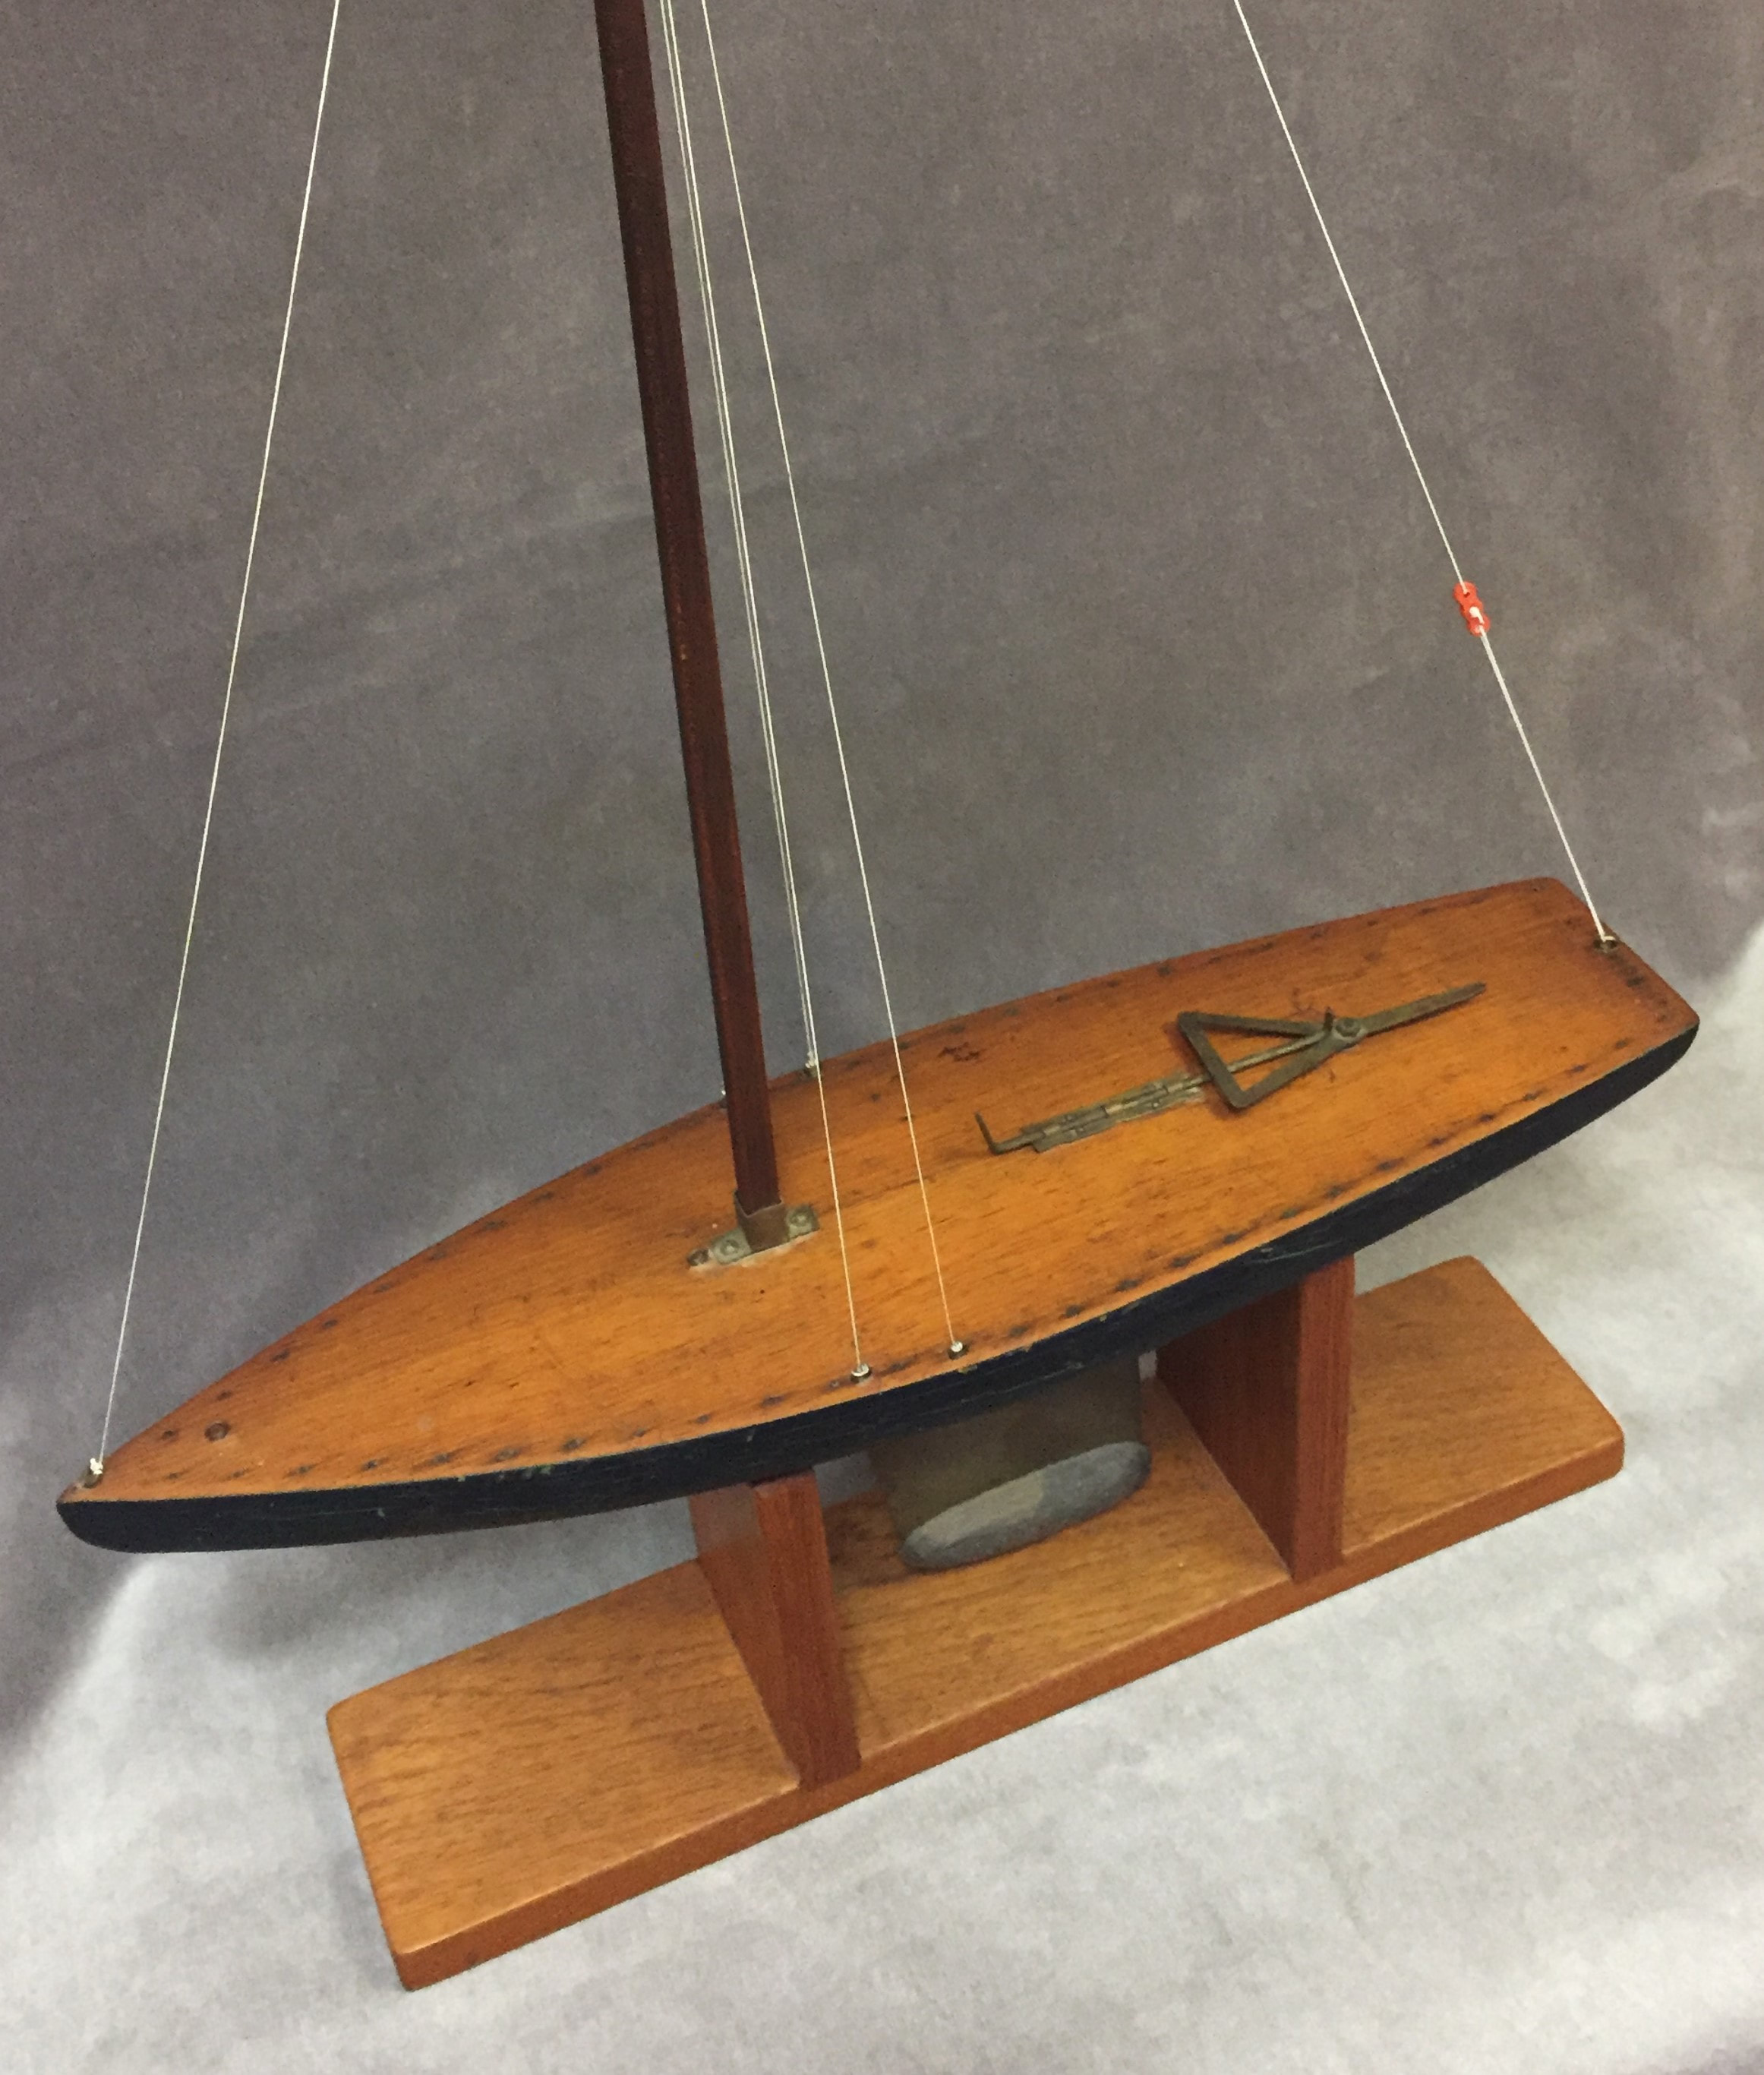 Antique Skeleton Keel Pond Yacht - Boat Model